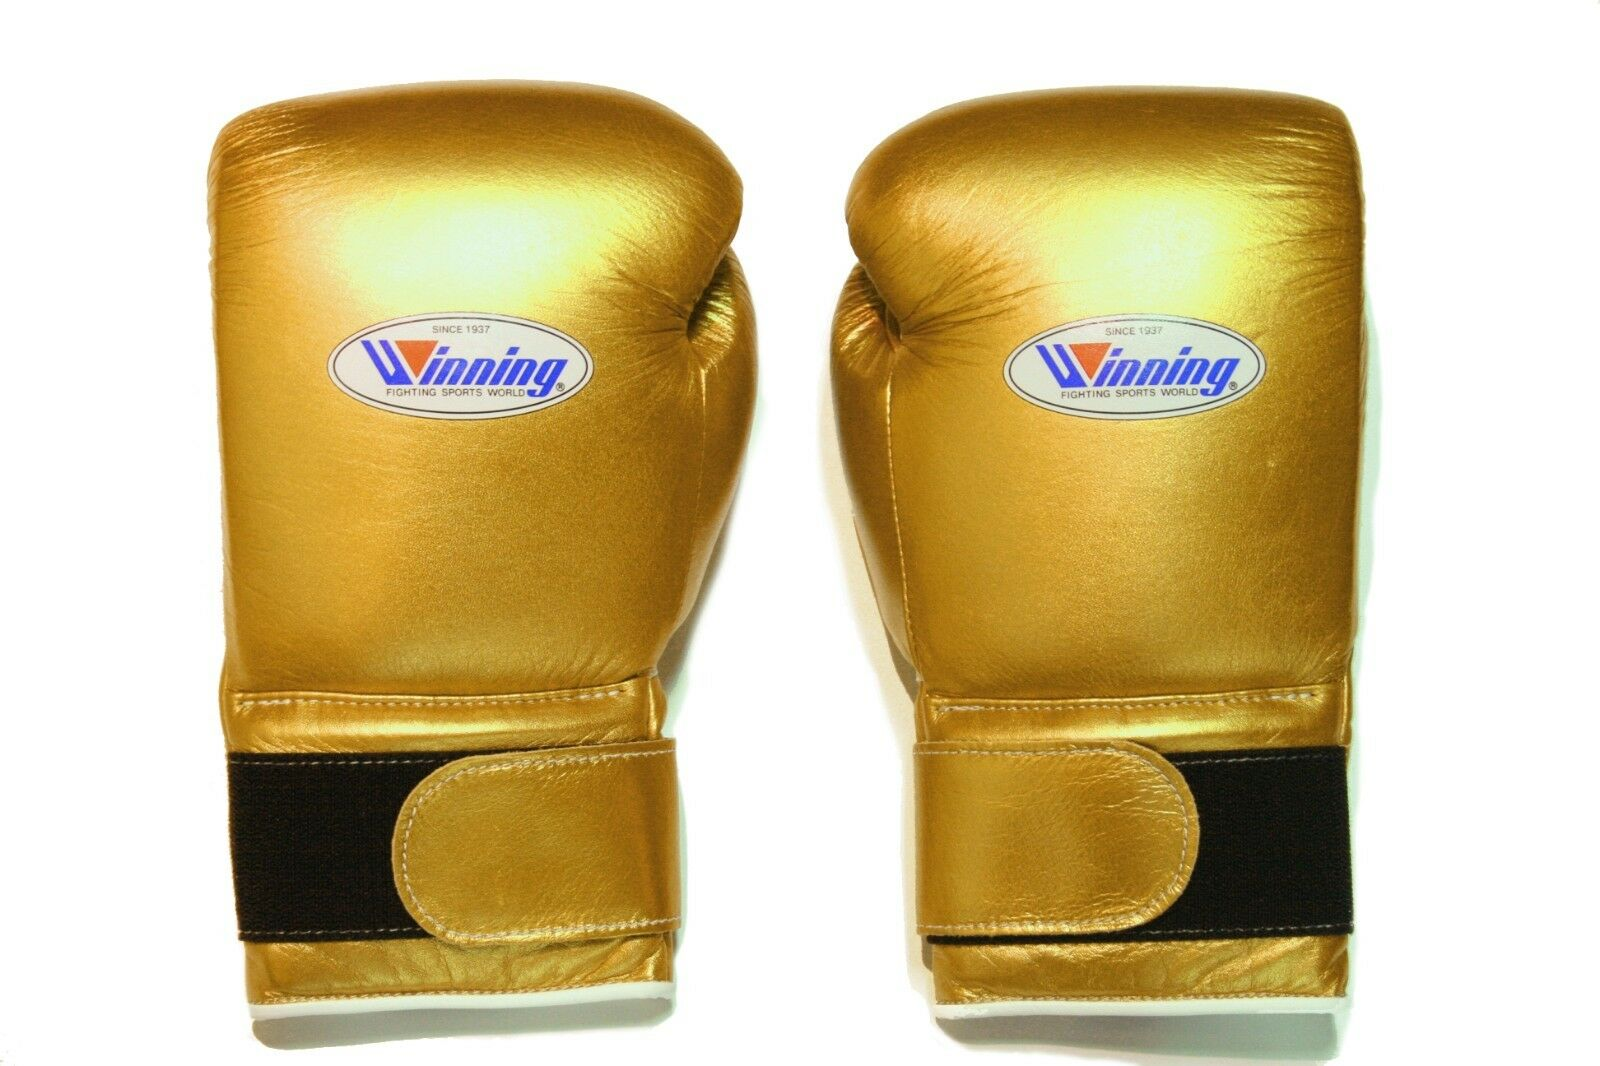 Winning Boxing G s(gold) Tape Pro Type MS 300B 10  oz Handcrafted in Japan  fast shipping to you